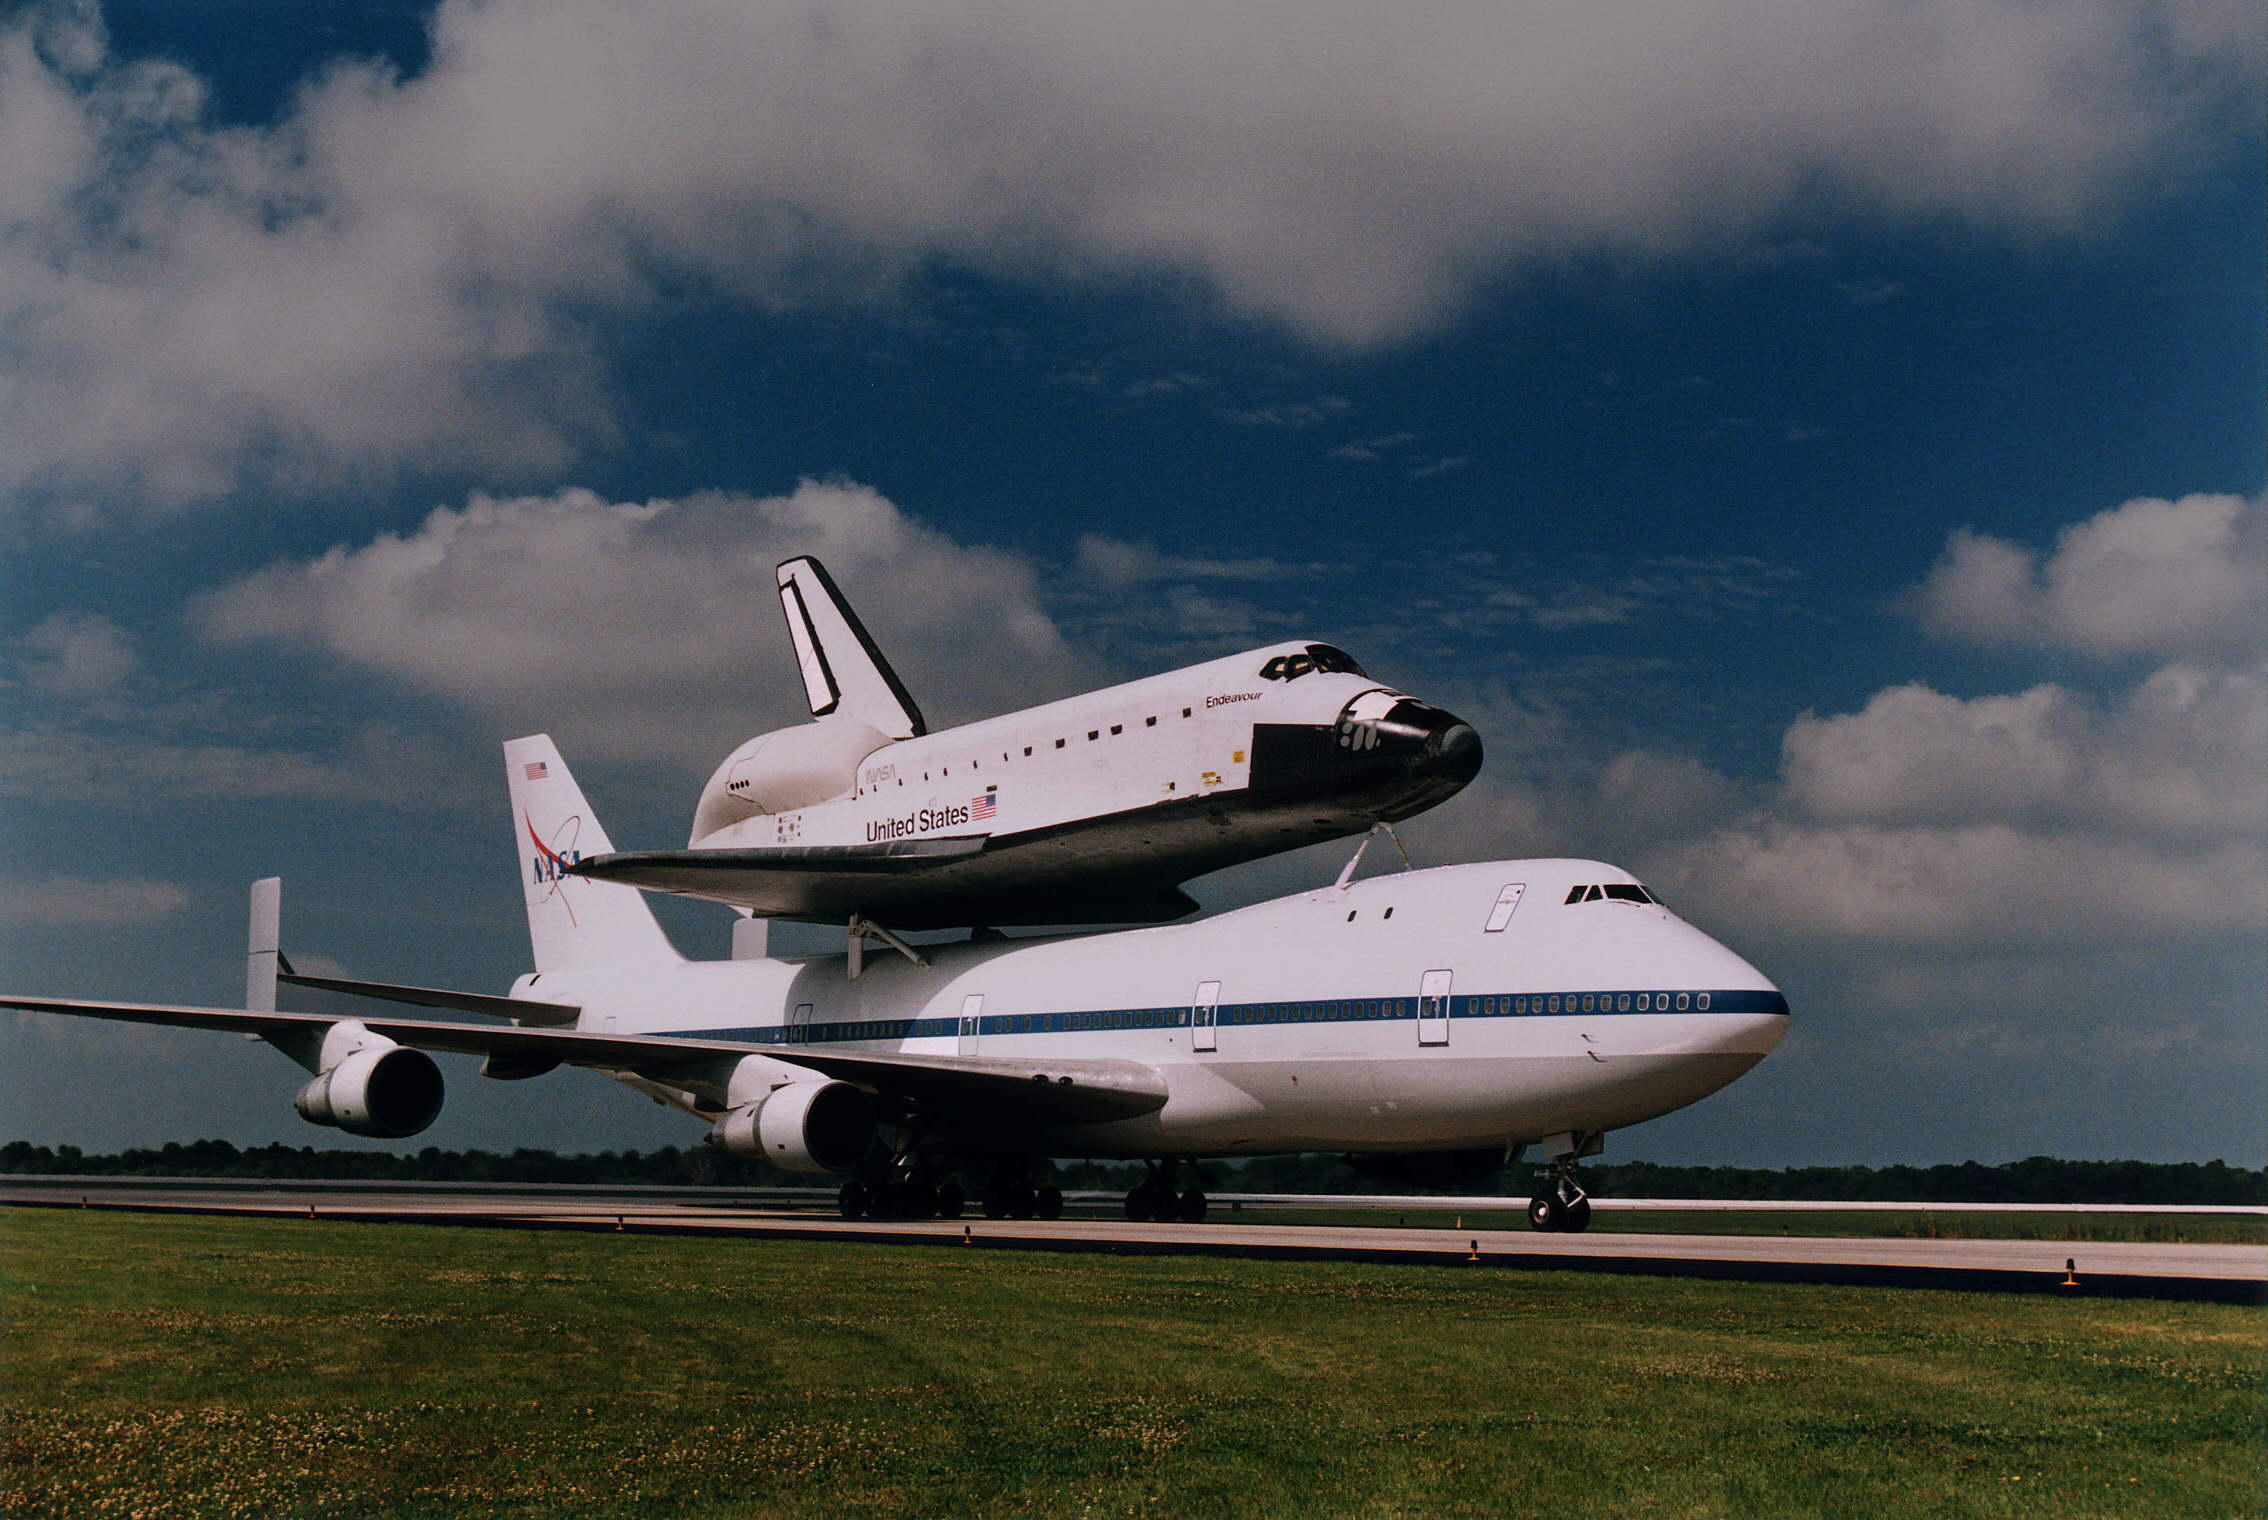 Last chances to see NASA's Space Shuttles in the air ...